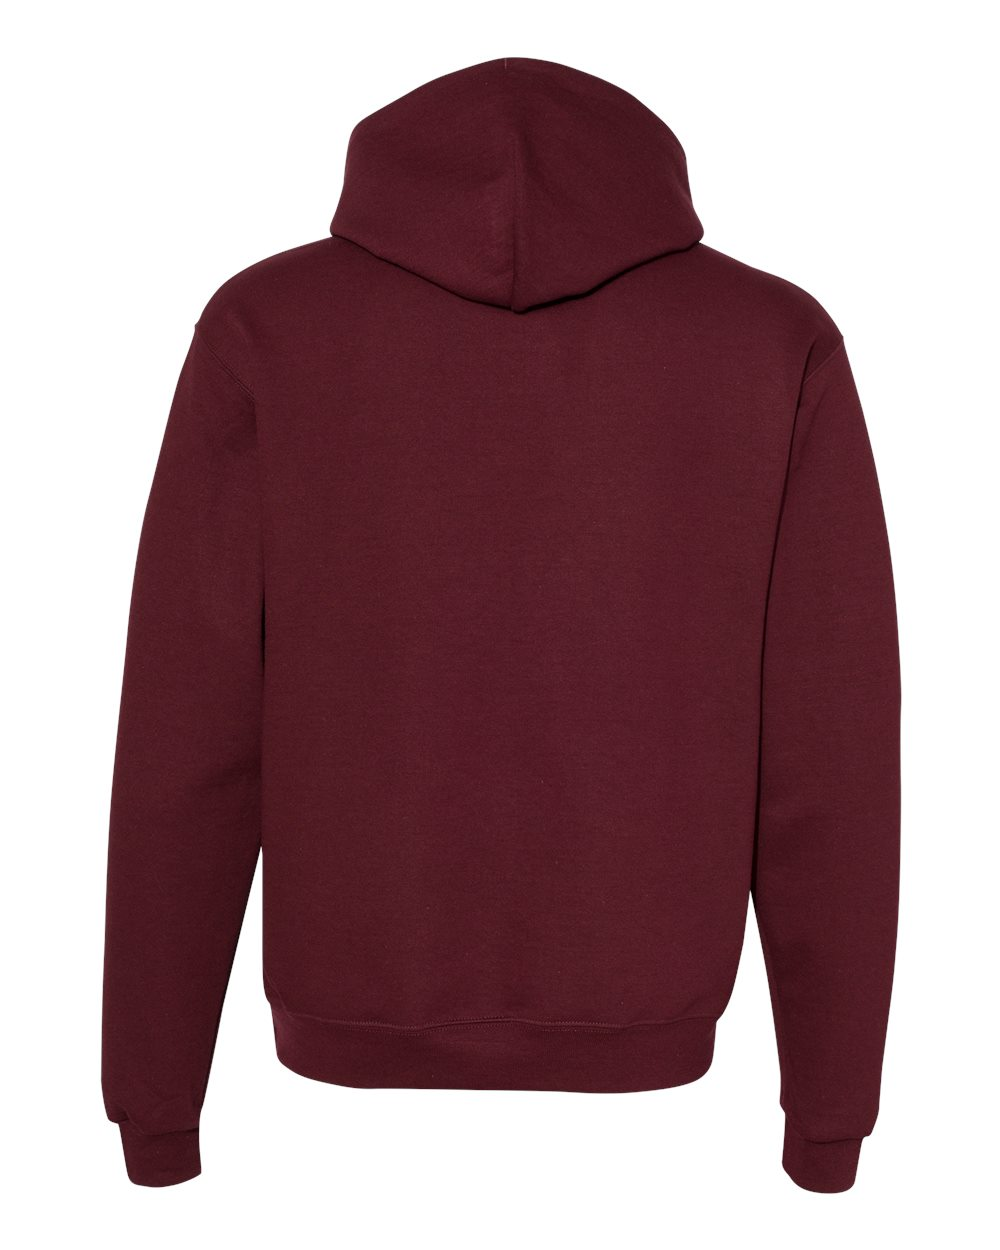 Champion-Mens-Double-Dry-Eco-Hooded-Sweatshirt-Hoodie-Pullover-S700-up-to-3XL miniature 22